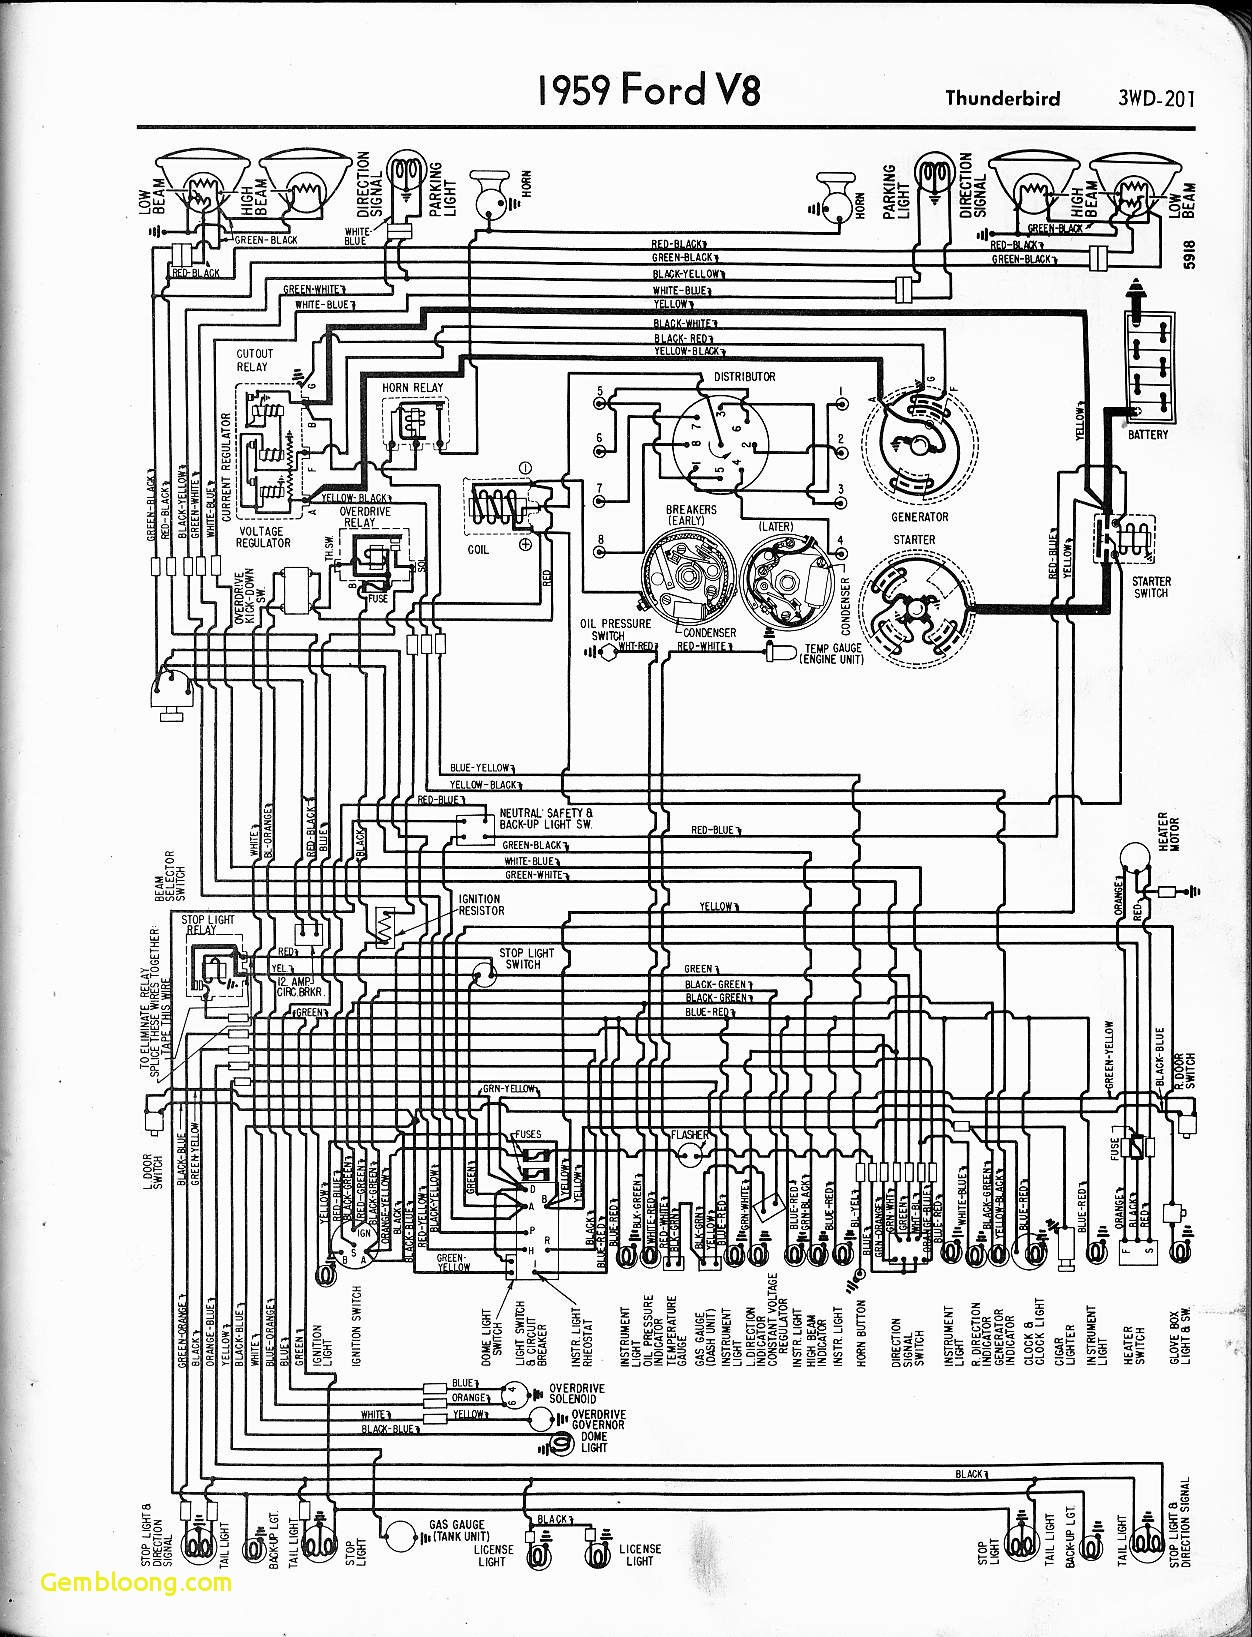 2006 F150 Engine Diagram Download ford Trucks Wiring Diagrams ford F150 Wiring Diagrams Best Of 2006 F150 Engine Diagram ford F150 Engine Diagram Another Blog About Wiring Diagram •